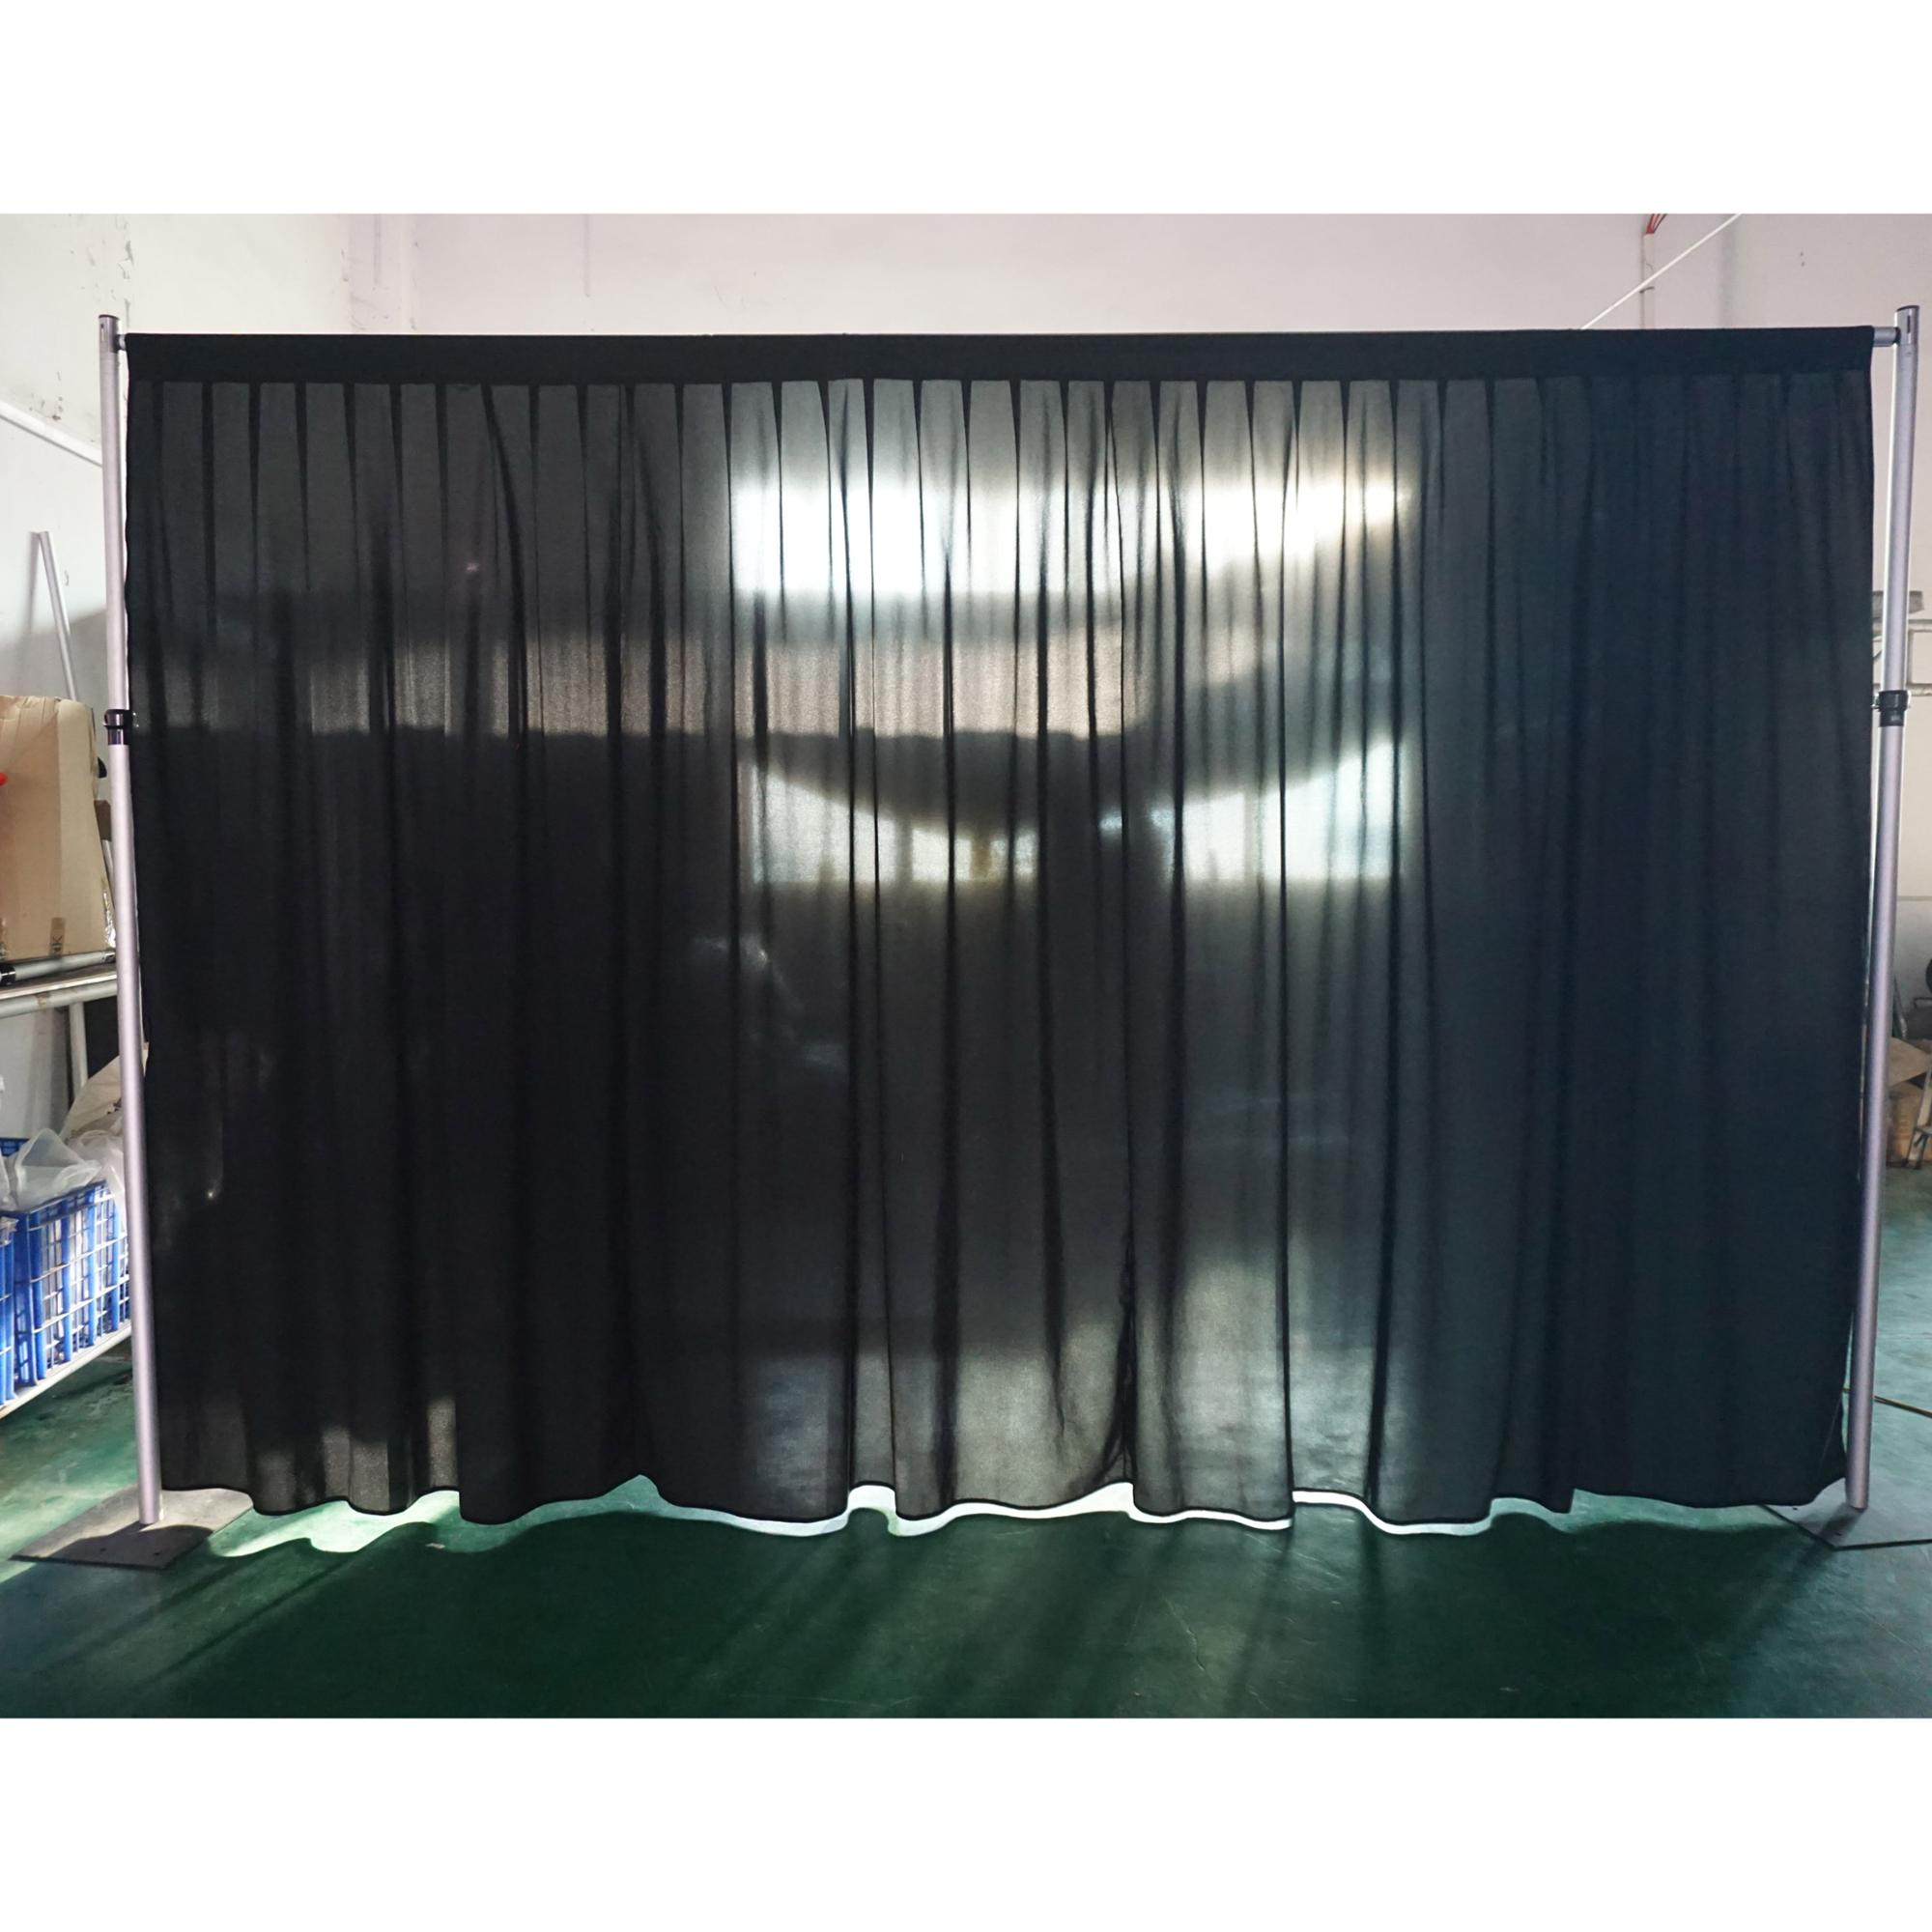 dp pipe high kit only wide drapes height amazon products adjustable and framework drape com office x to